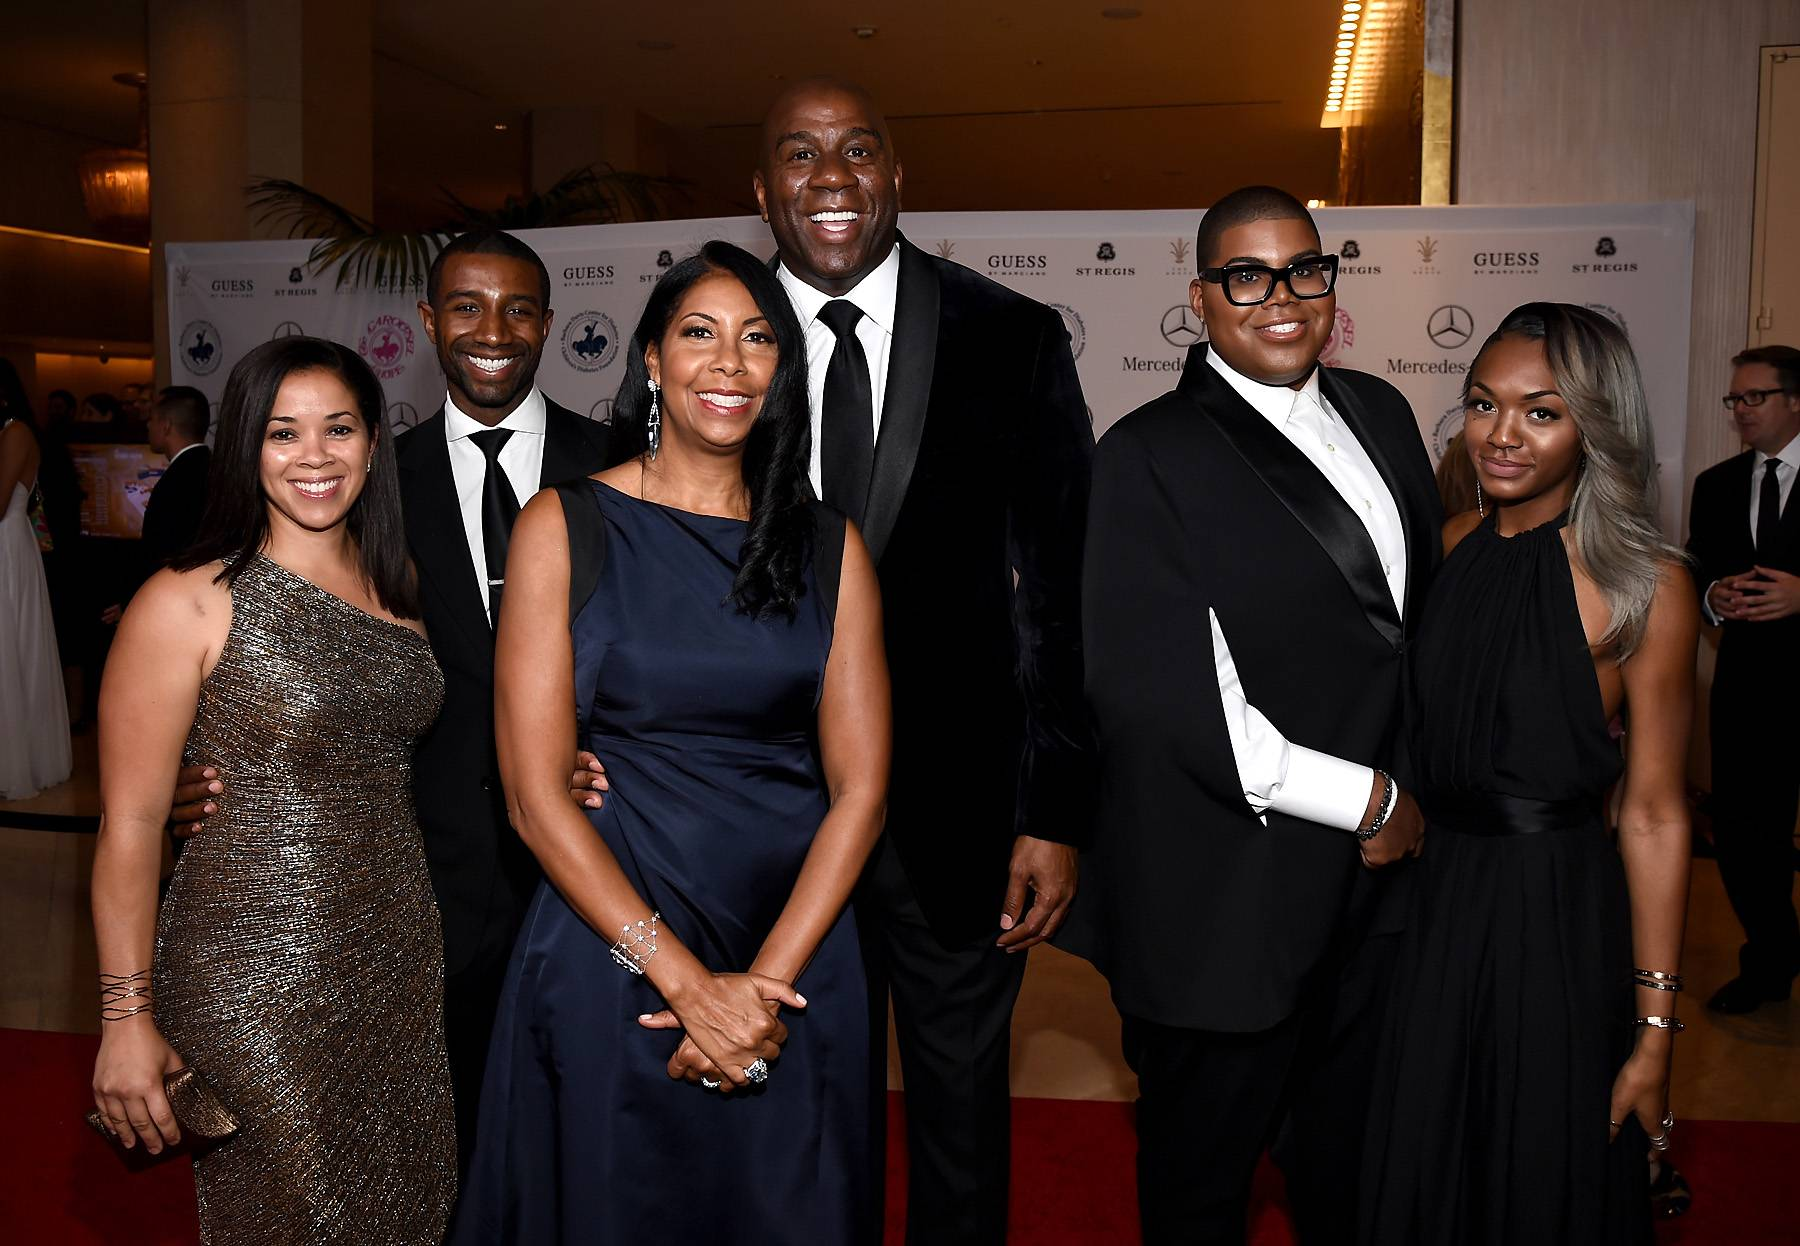 A Magic Family  - Most people are familiar with EJ Johnson taking over Sunset Strip on Rich Kids of Beverly Hills. How is he rich, you ask? Well, his father is none other than NBA star, Magic Johnson. (Photo: Michael Buckner/Getty Images)